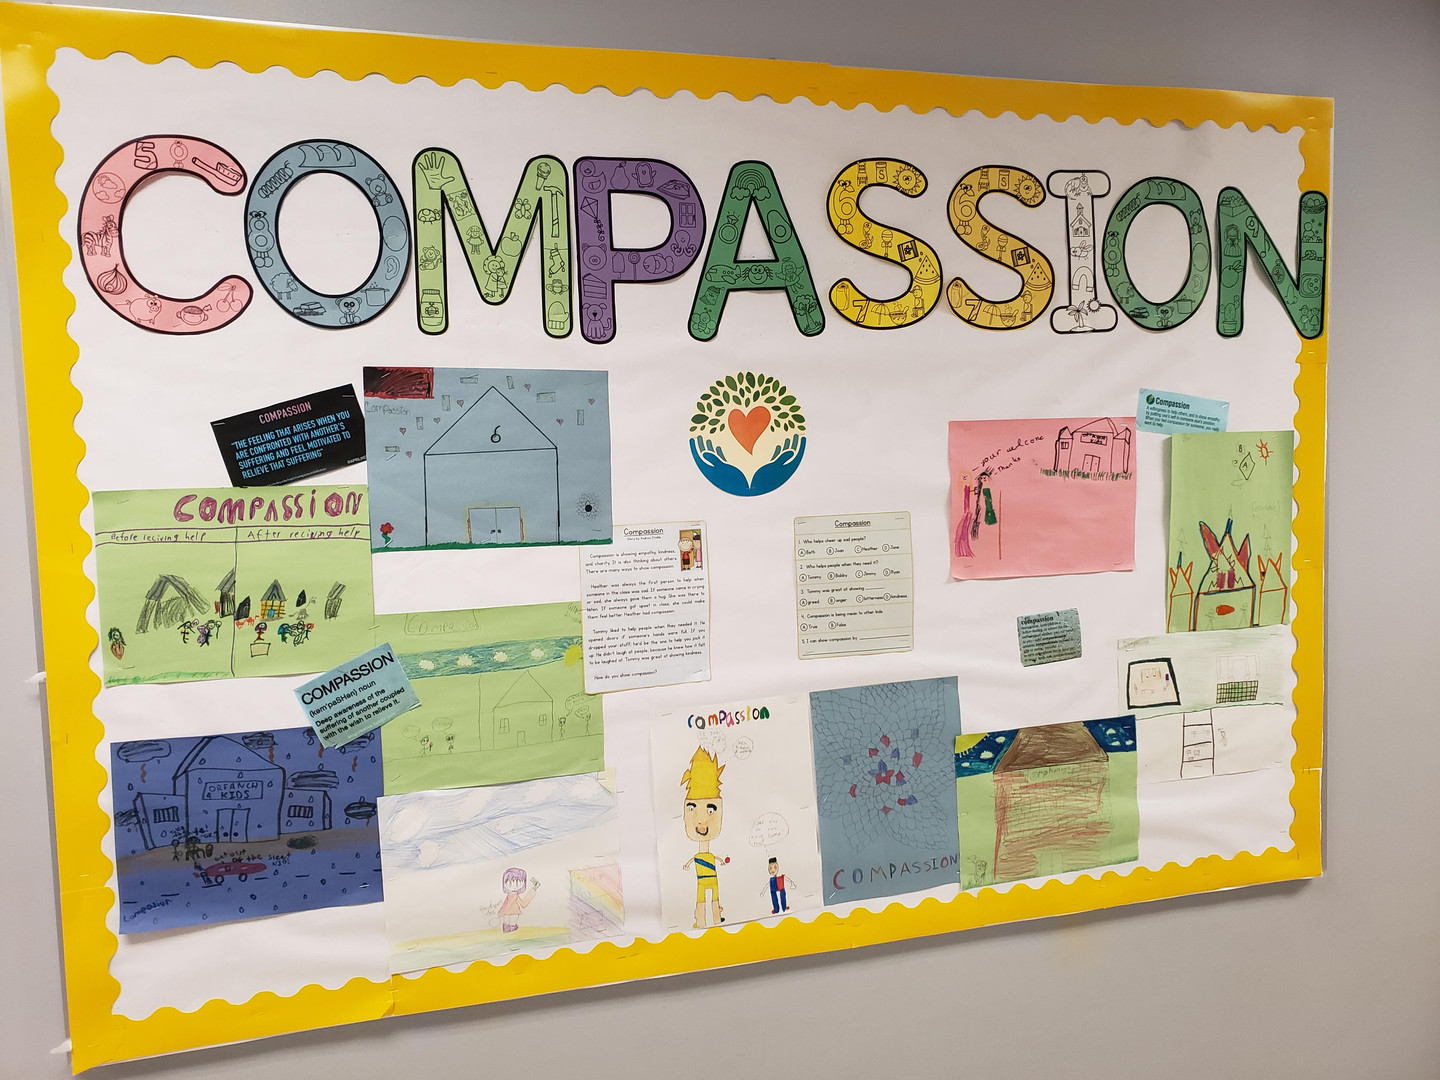 Guided Values: Compassion